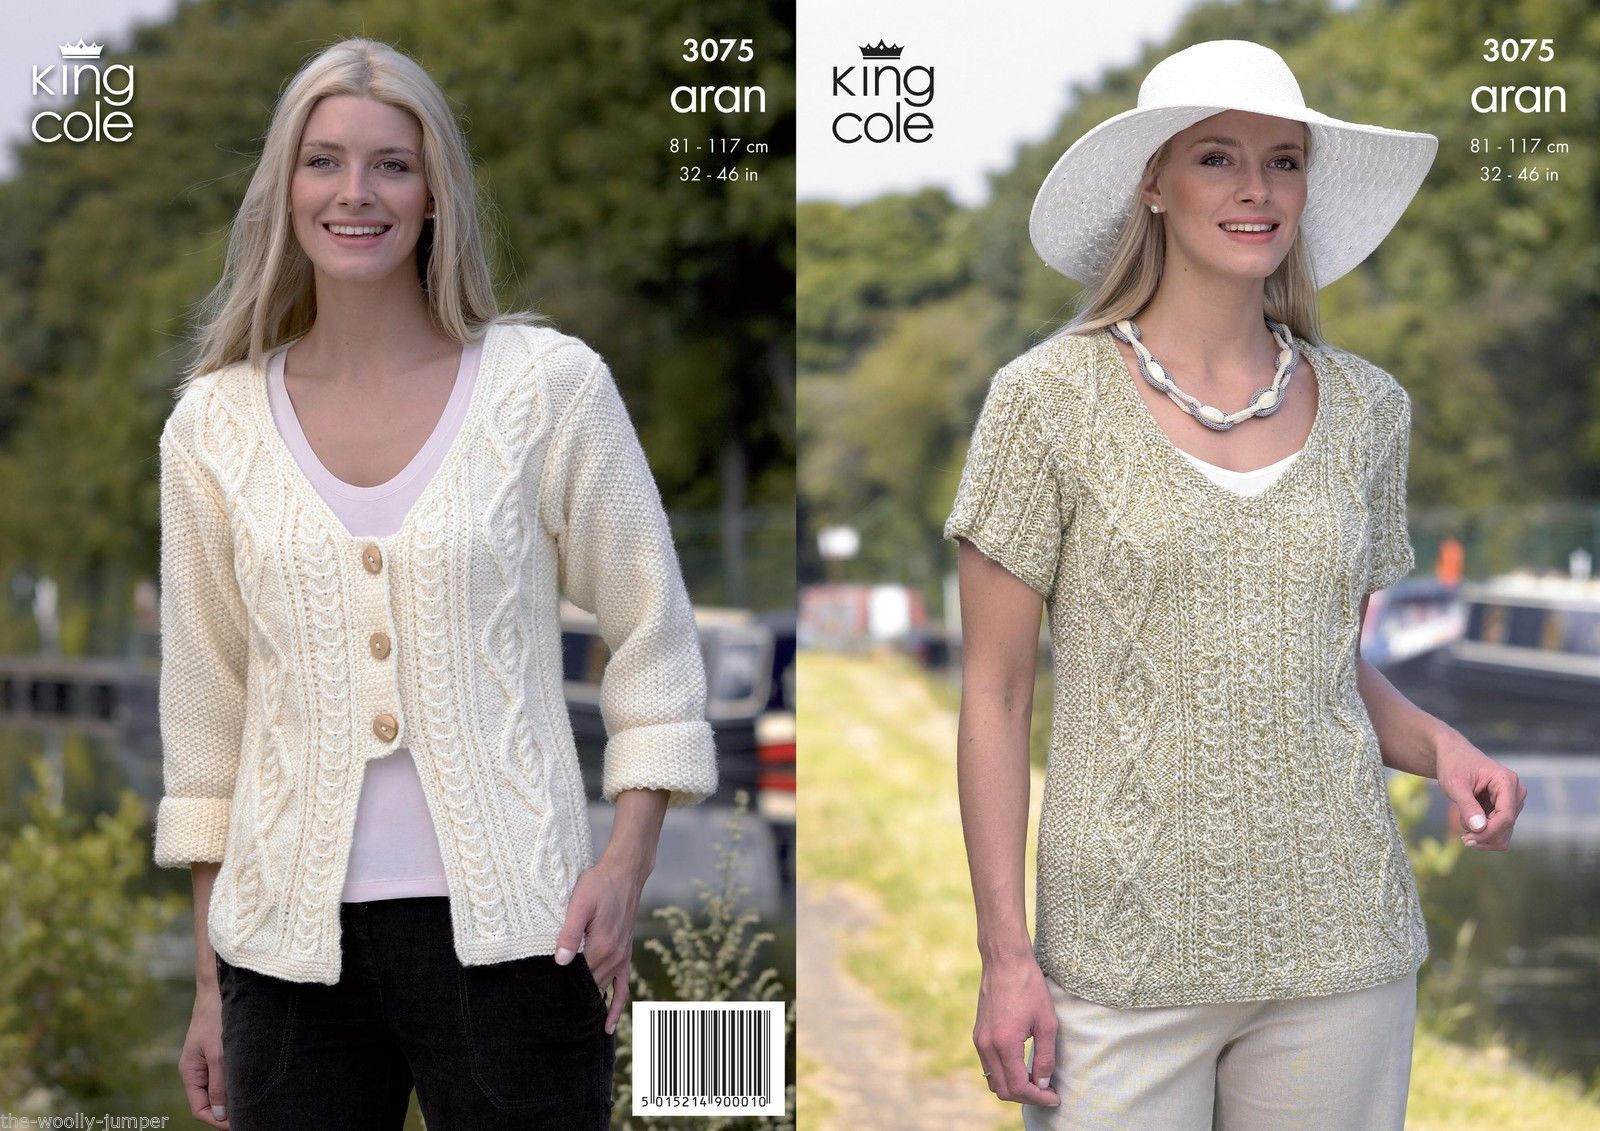 Aran Jumper Knitting Patterns 3075 King Cole Fashion Aran Sweater Cardigan Jacket Knitting Pattern To Fit Chest 32 To 46